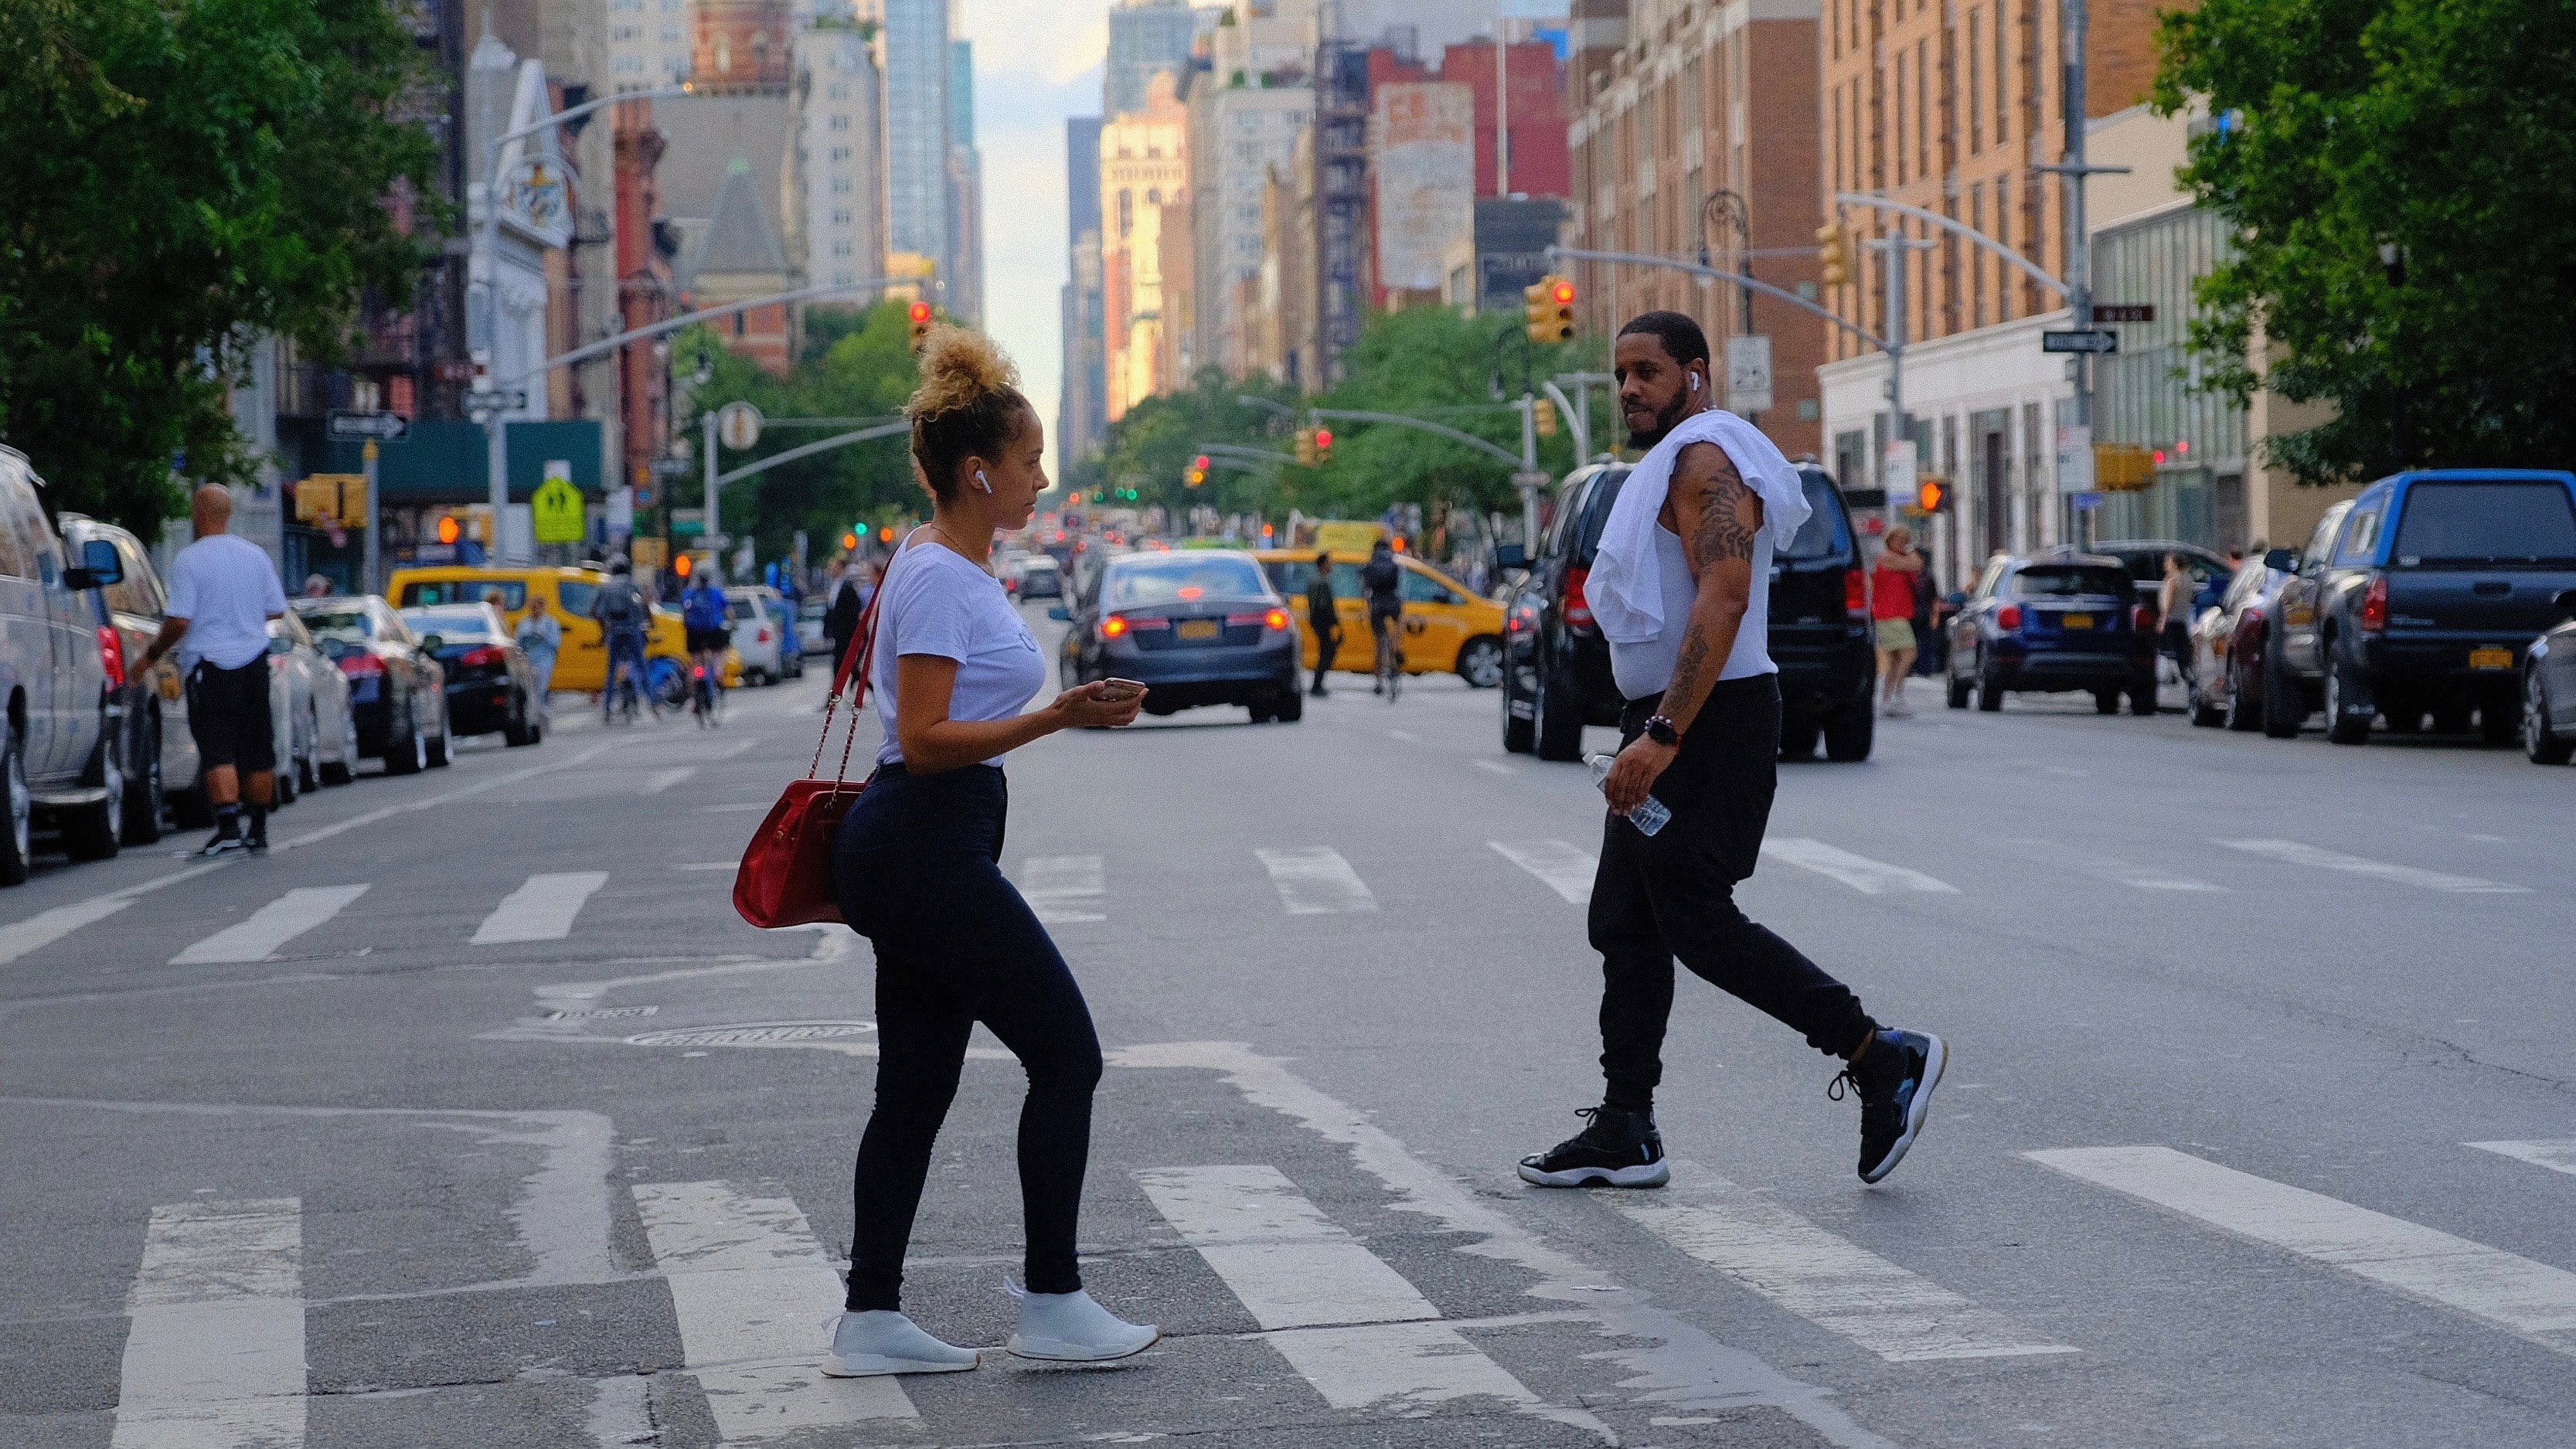 man and woman crossing on the street